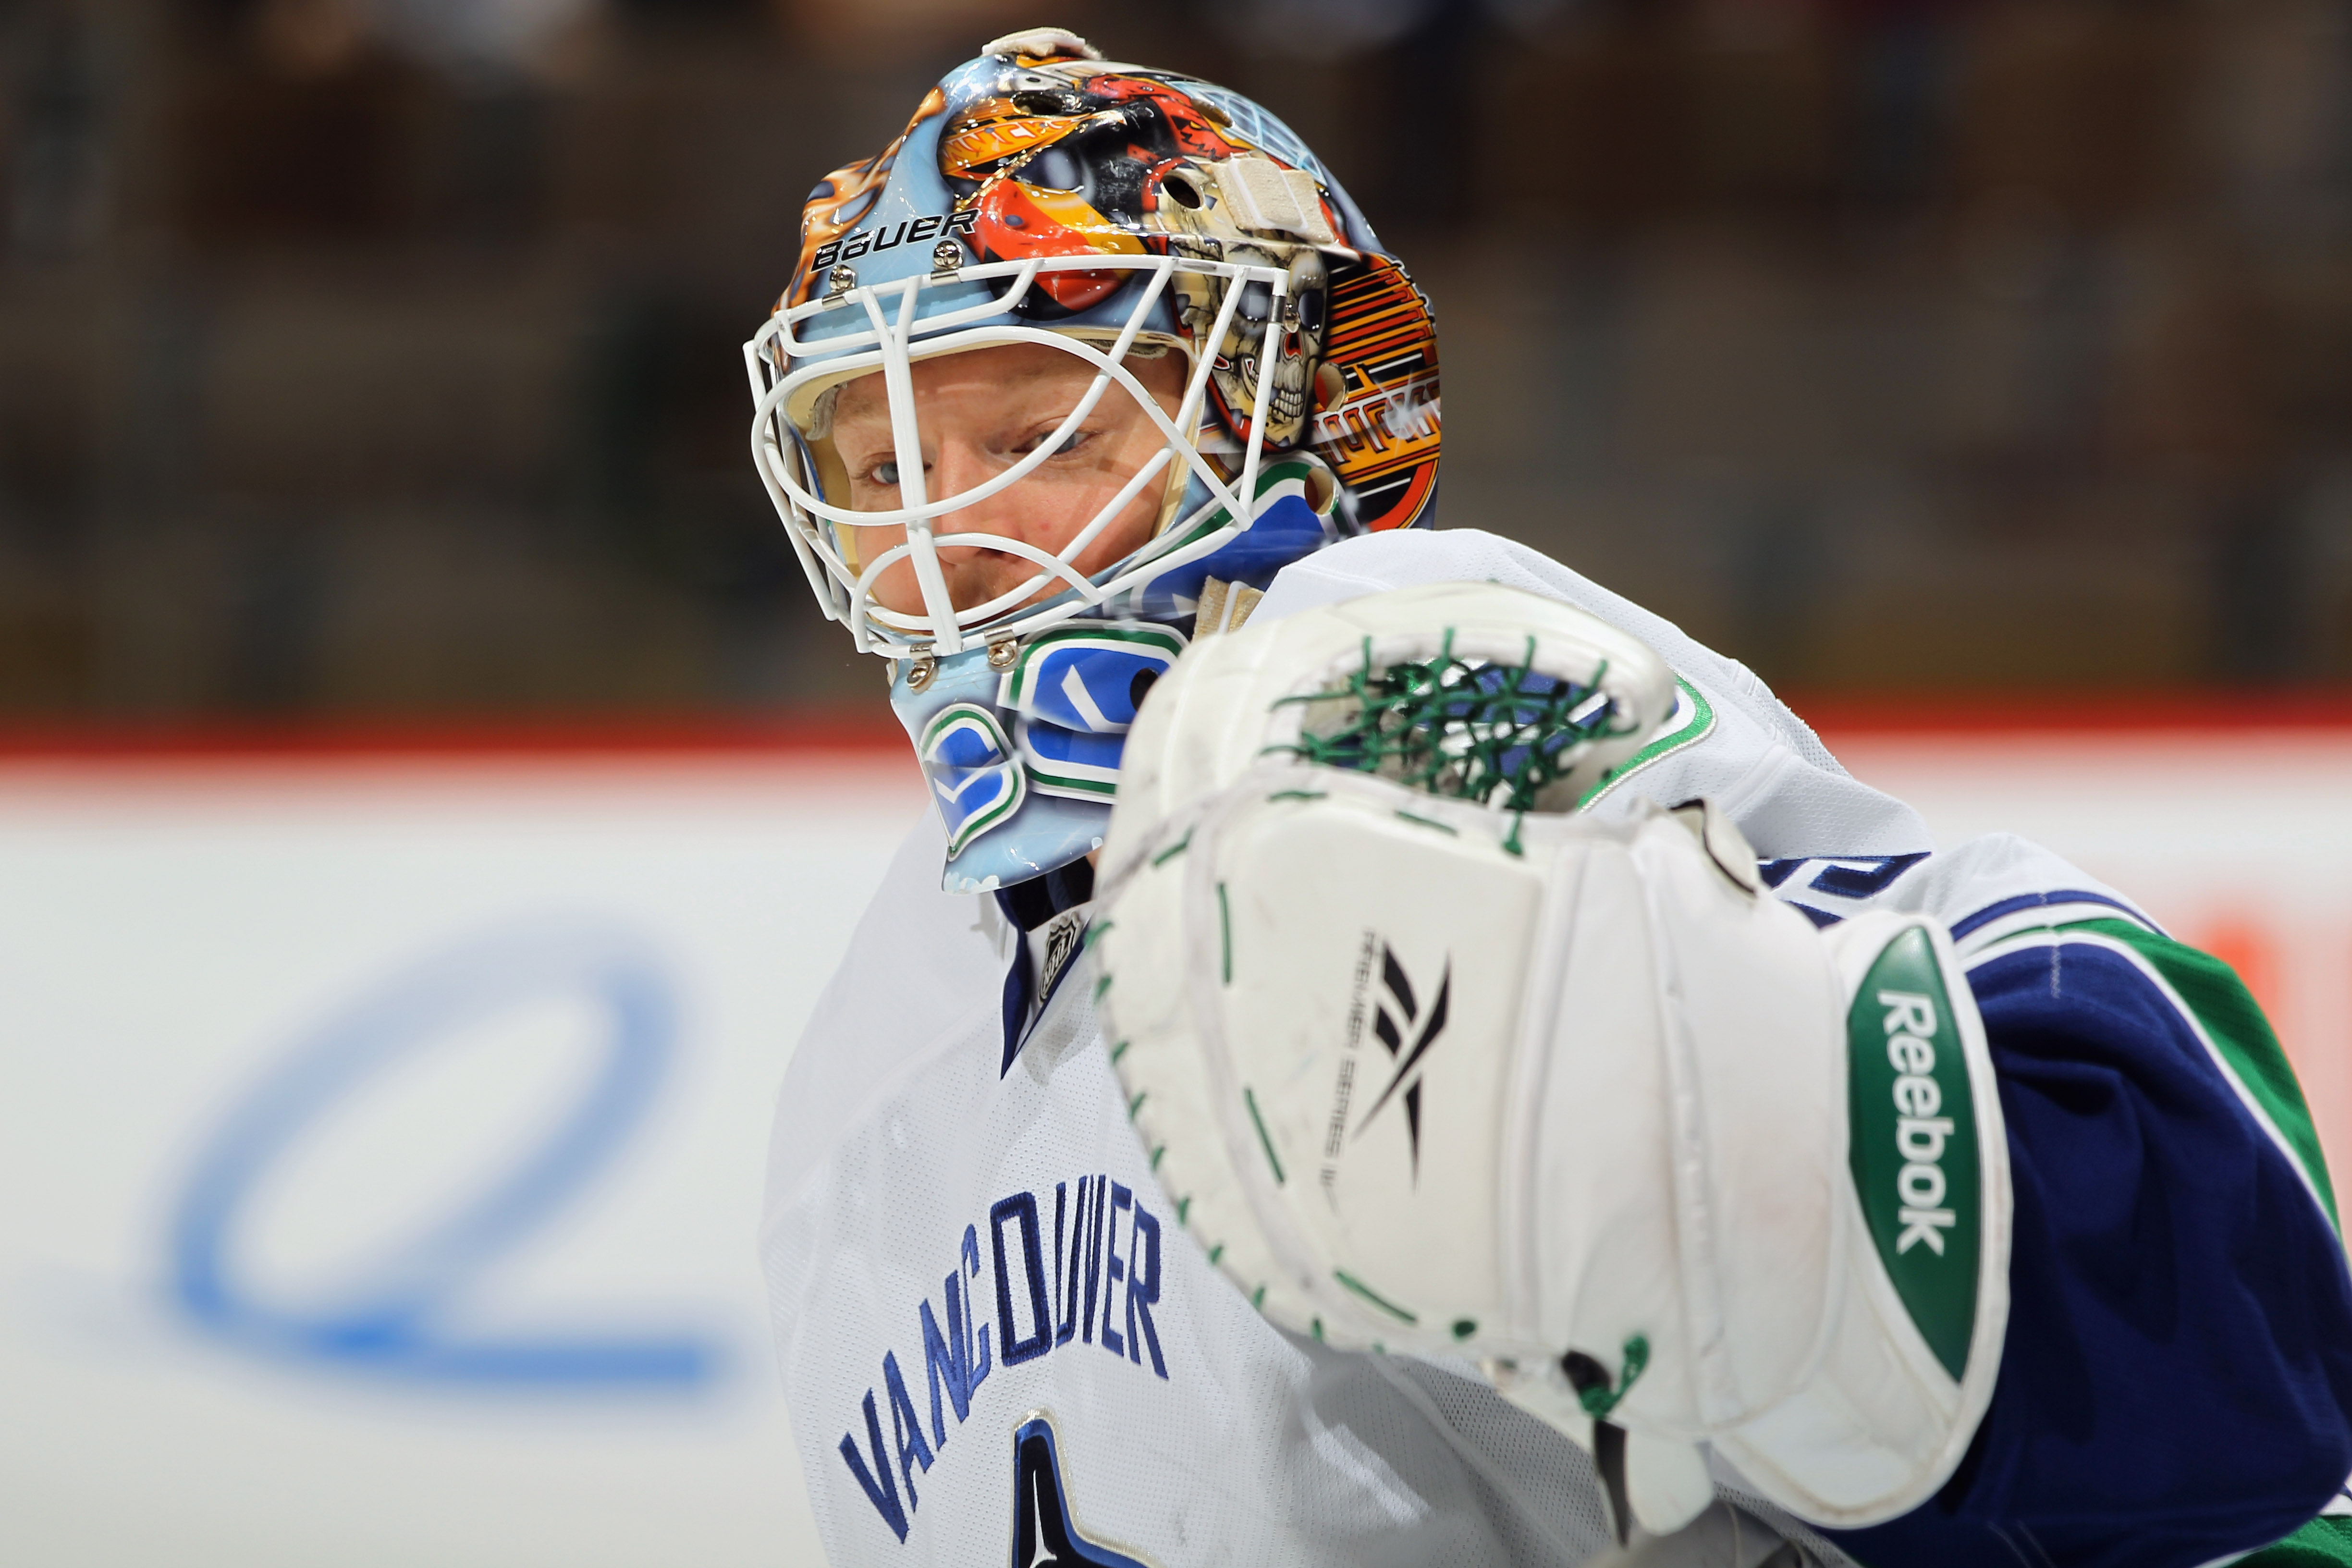 DENVER, CO - JANUARY 18:  Goalie Cory Schneider #35 of the Canucks looks on during warm up prior to facing the Colorado Avalanche at the Pepsi Center on January 18, 2011 in Denver, Colorado. The Avalanche defeated the Canucks 4-3 in overtime.  (Photo by D